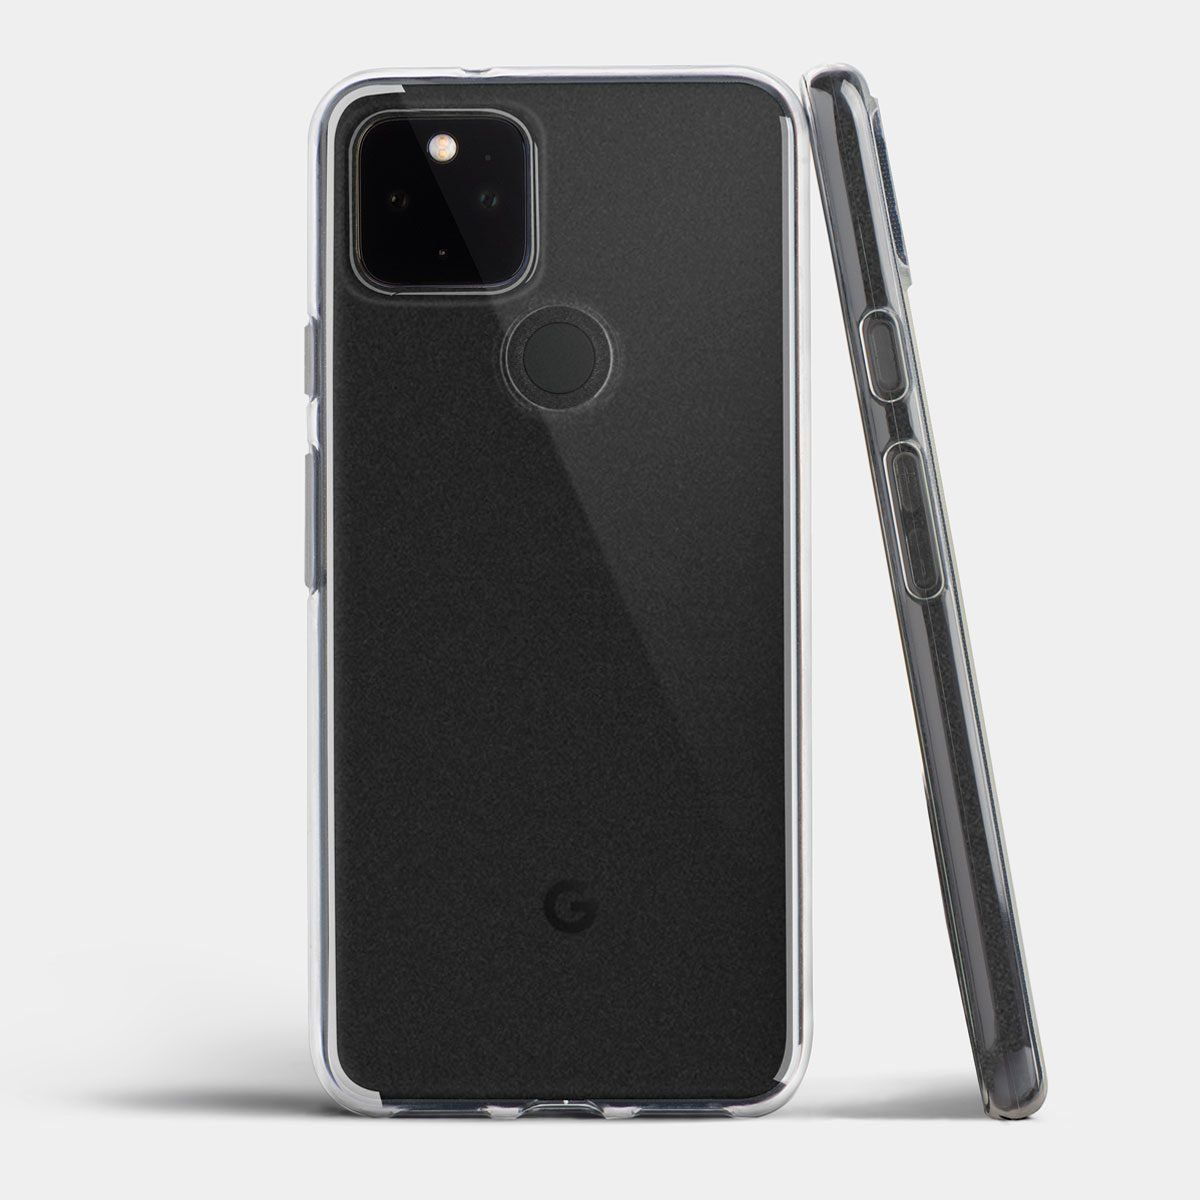 Totallee Pixel 5 Cases Announced